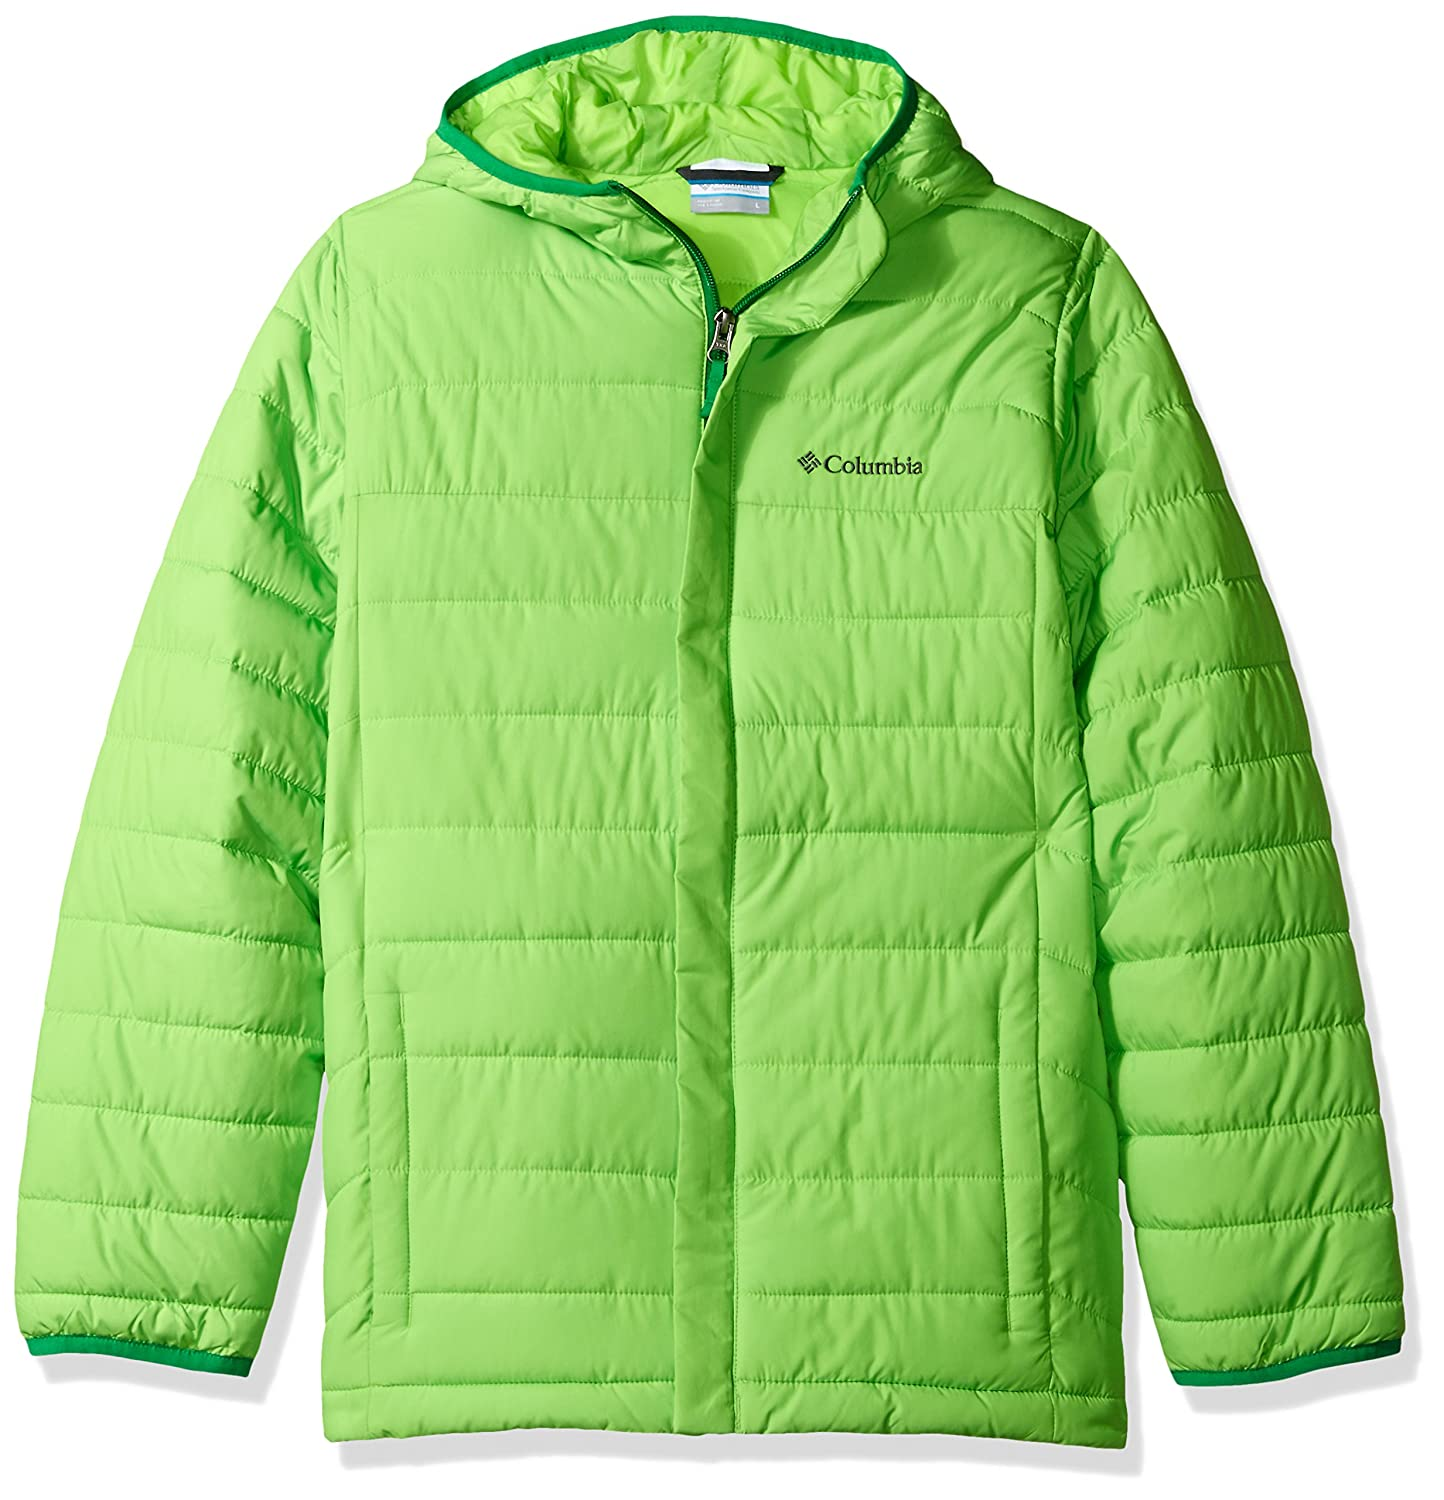 Columbia Powder Lite Puffer Giacca Invernale SG5494